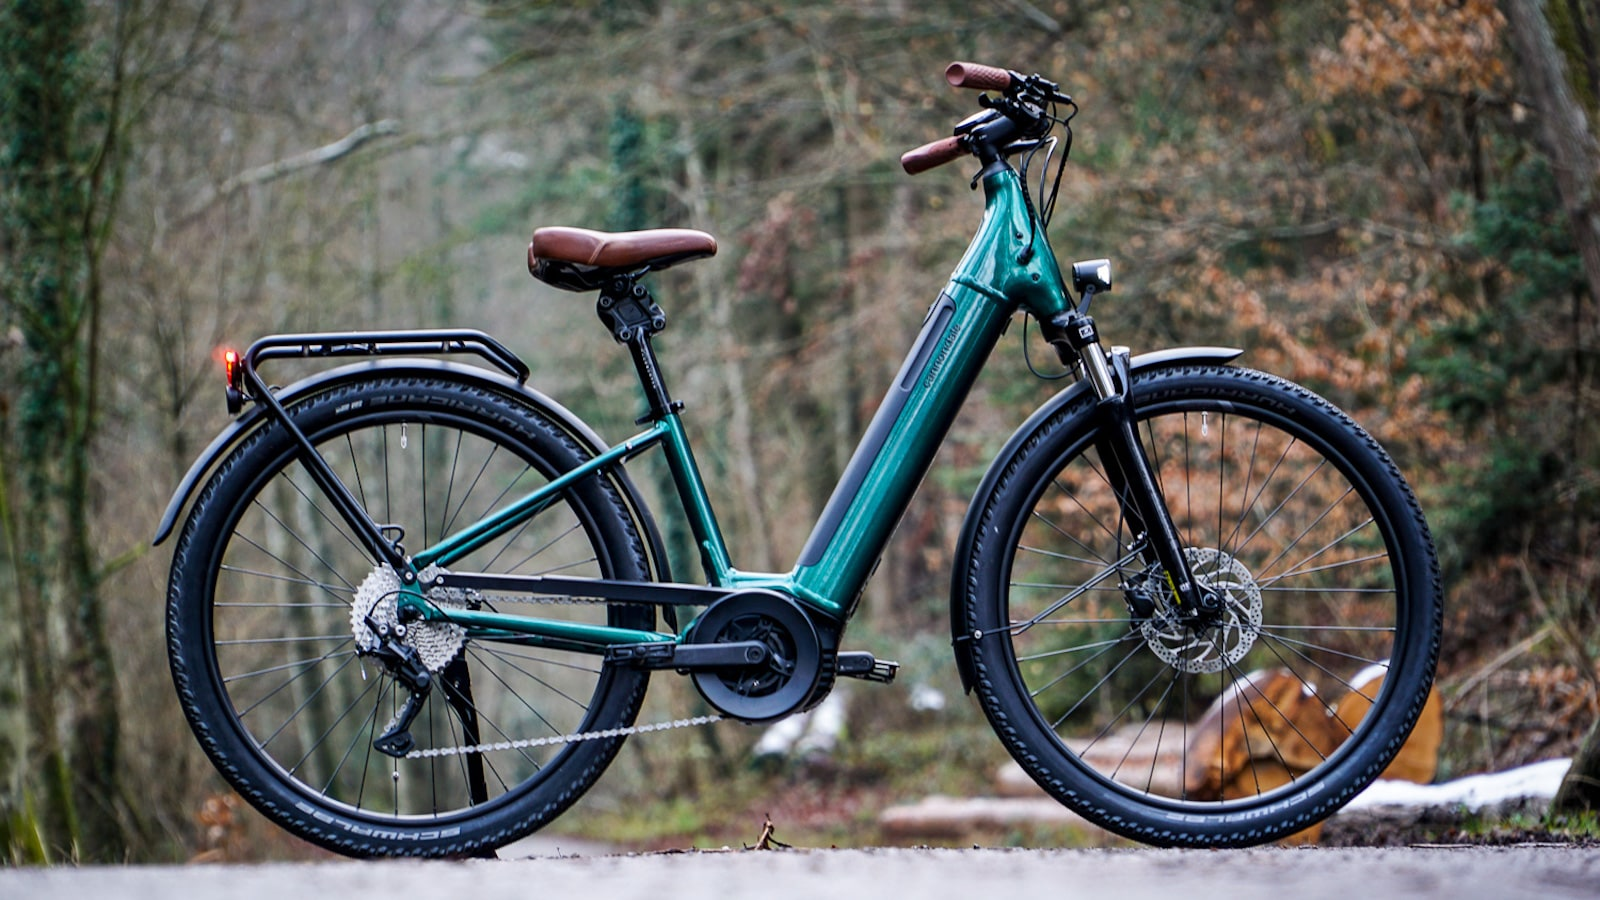 Cannondale Adventure Neo eBike collection keeps the effort of riding low and comforts high